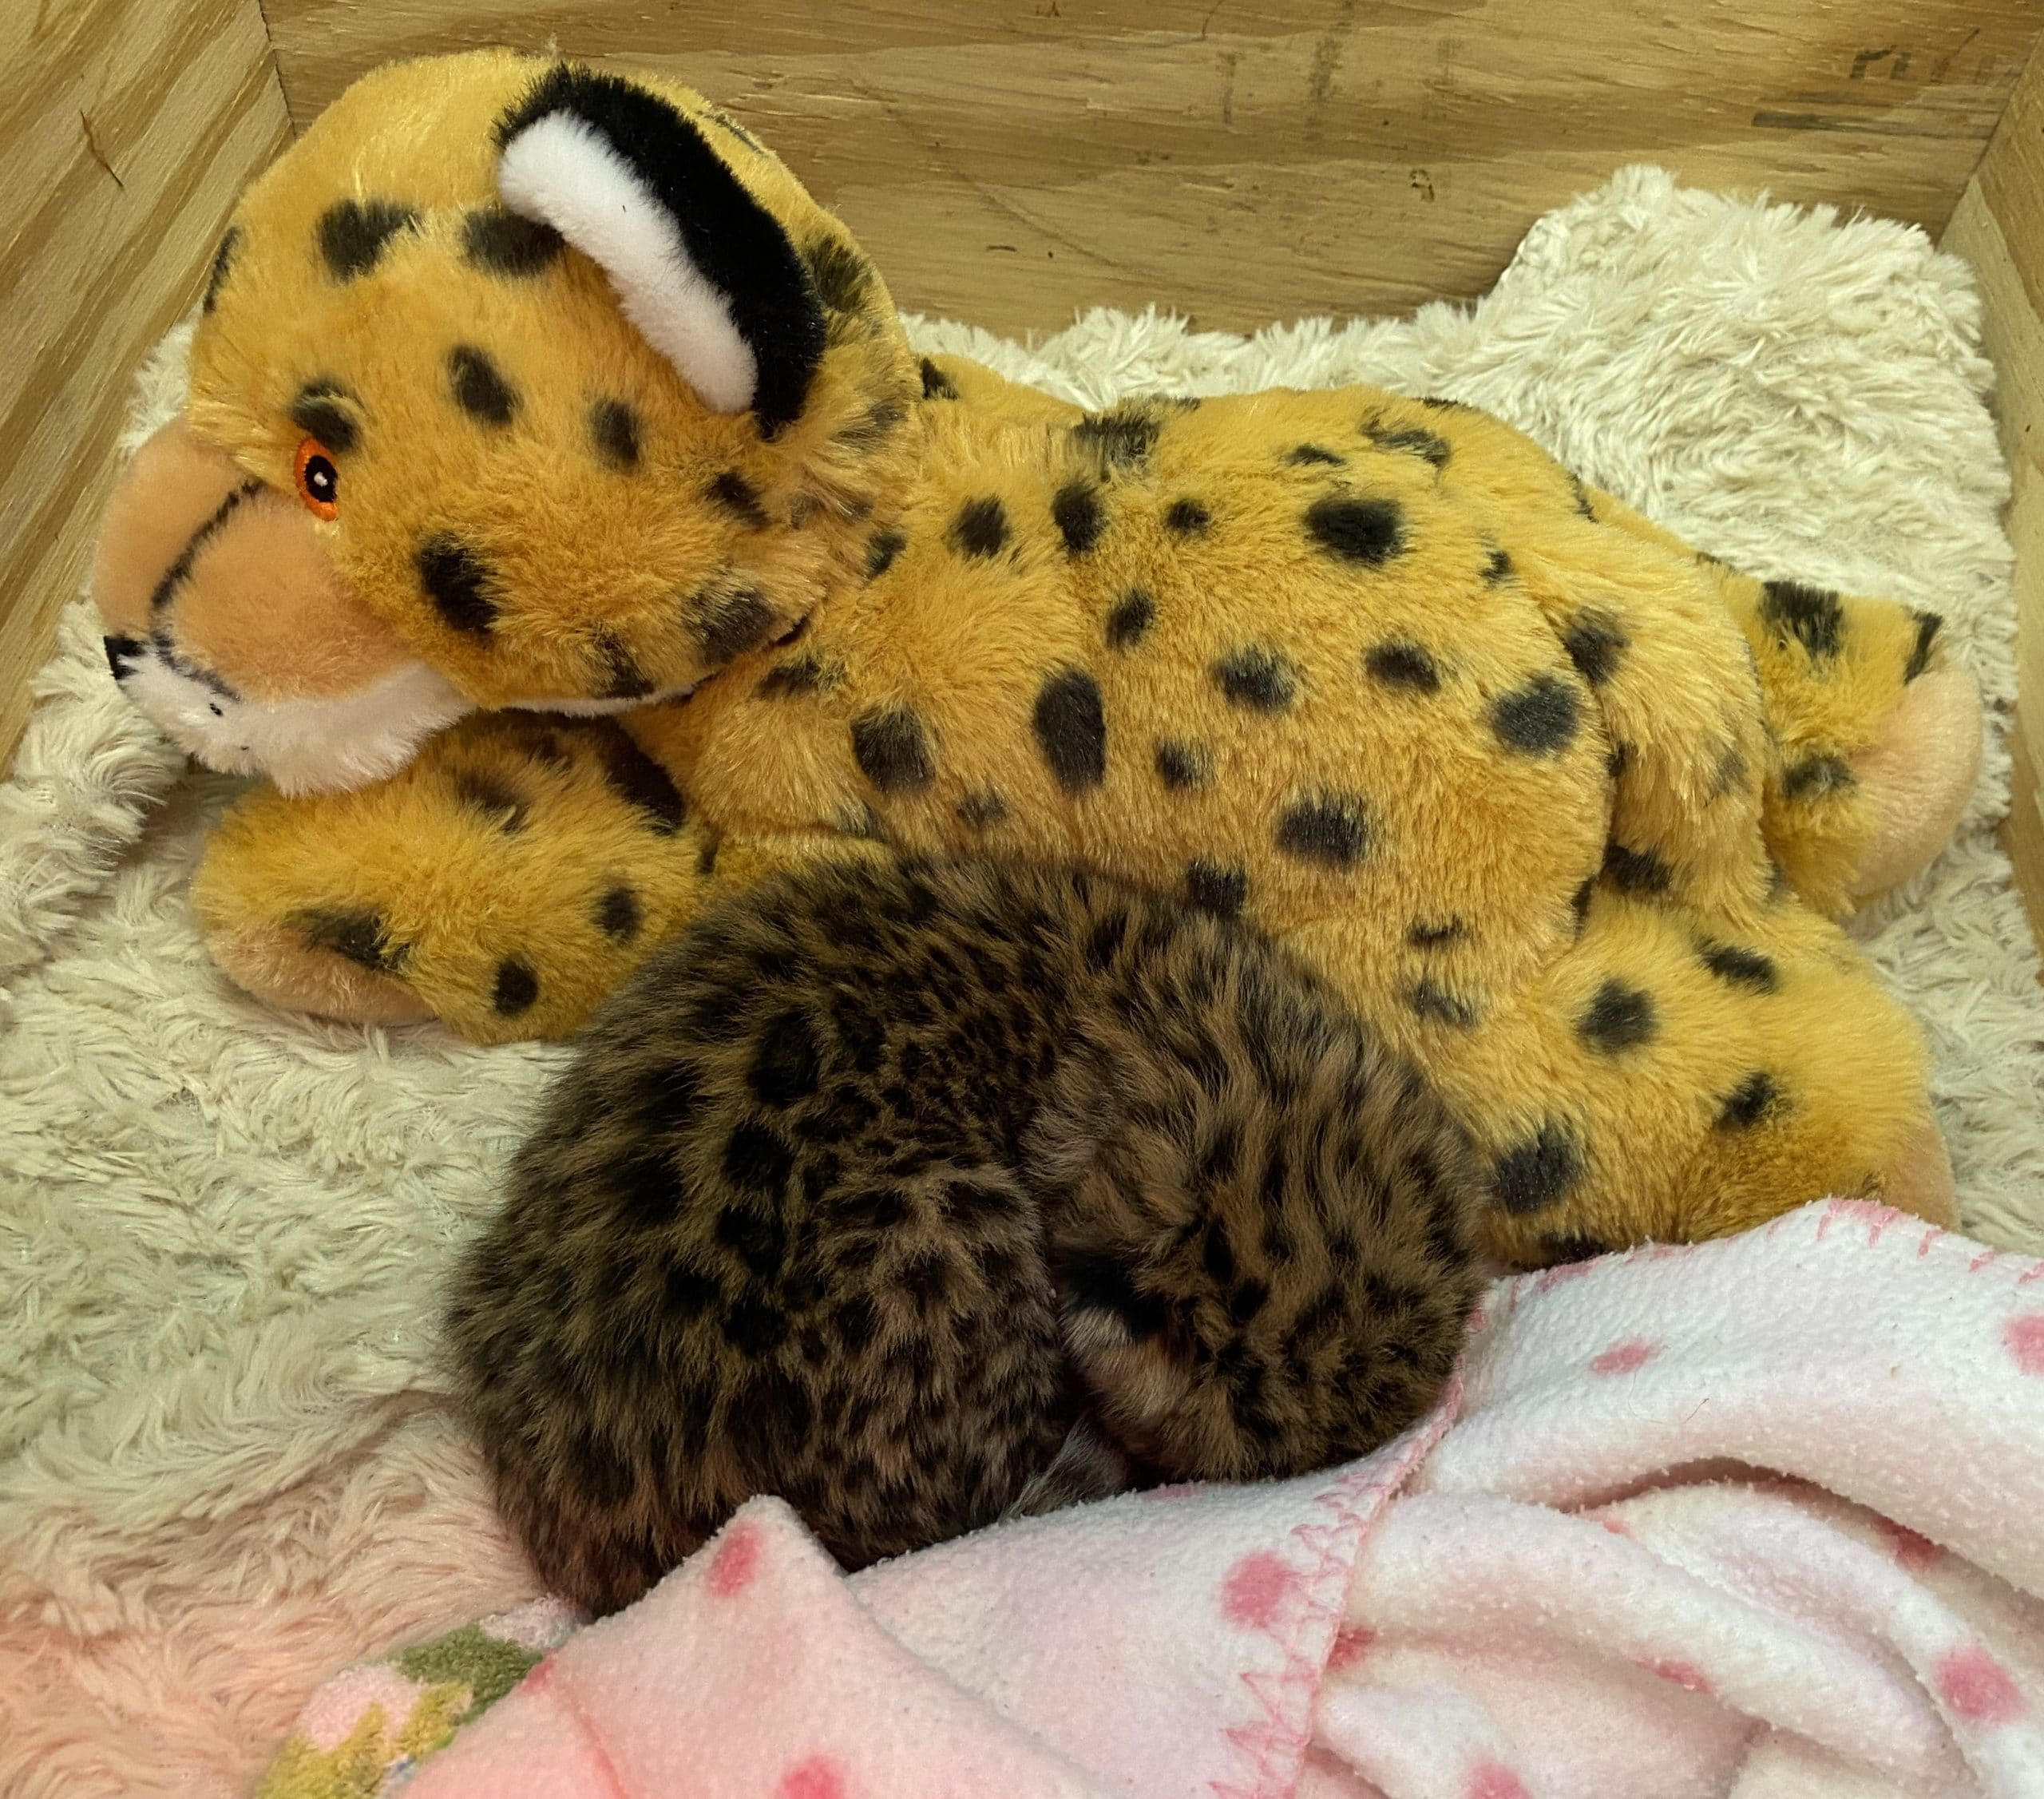 Happiness Is A Baby Amur Leopard at Essex County's Turtle Back Zoo